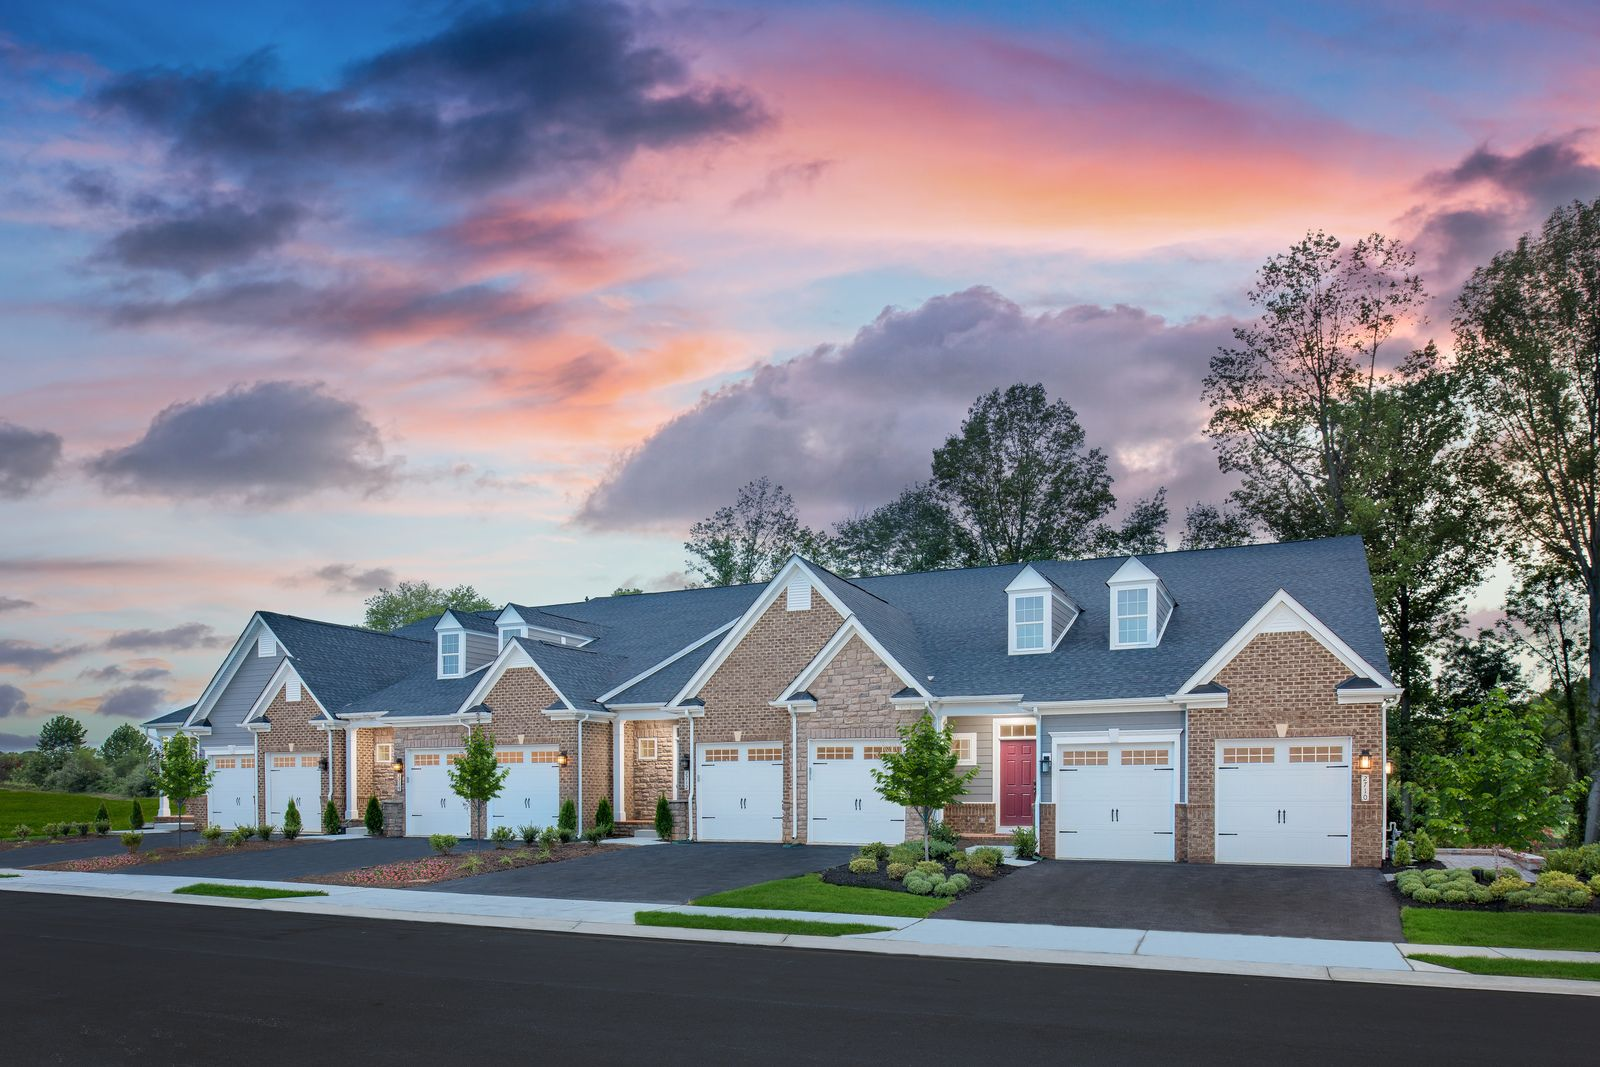 Luxury Without Compromise:Our grand villas at Turf Valley offer all the space of a single-family home without any of the maintenance hassles!Learn more by scheduling a visit today!